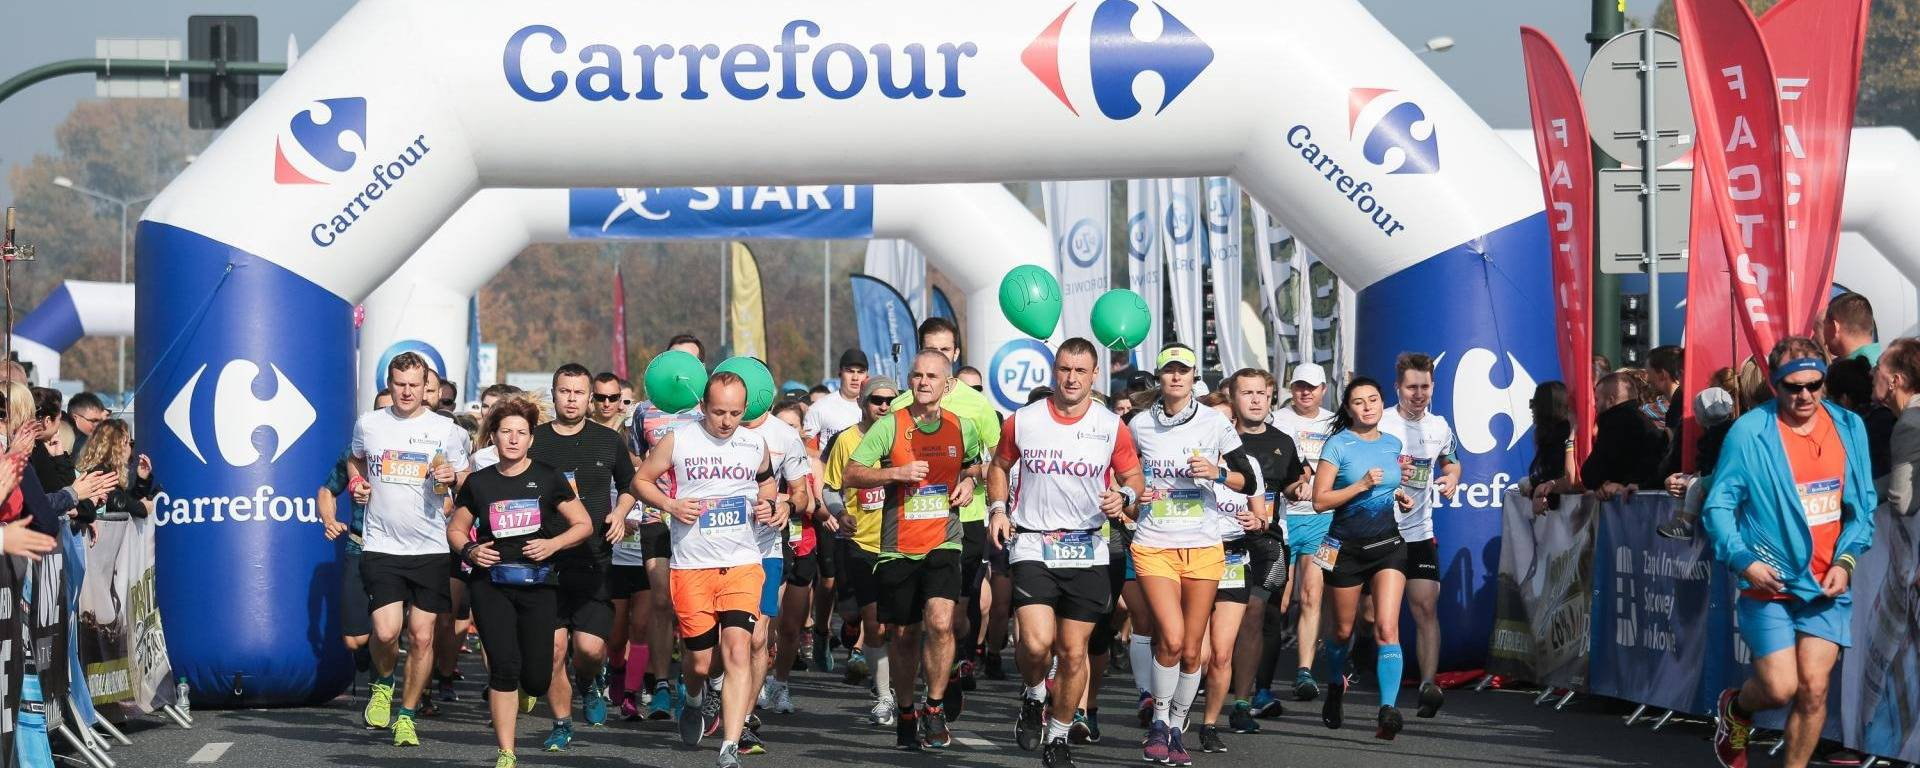 Carrefour took part in running races in Cracow